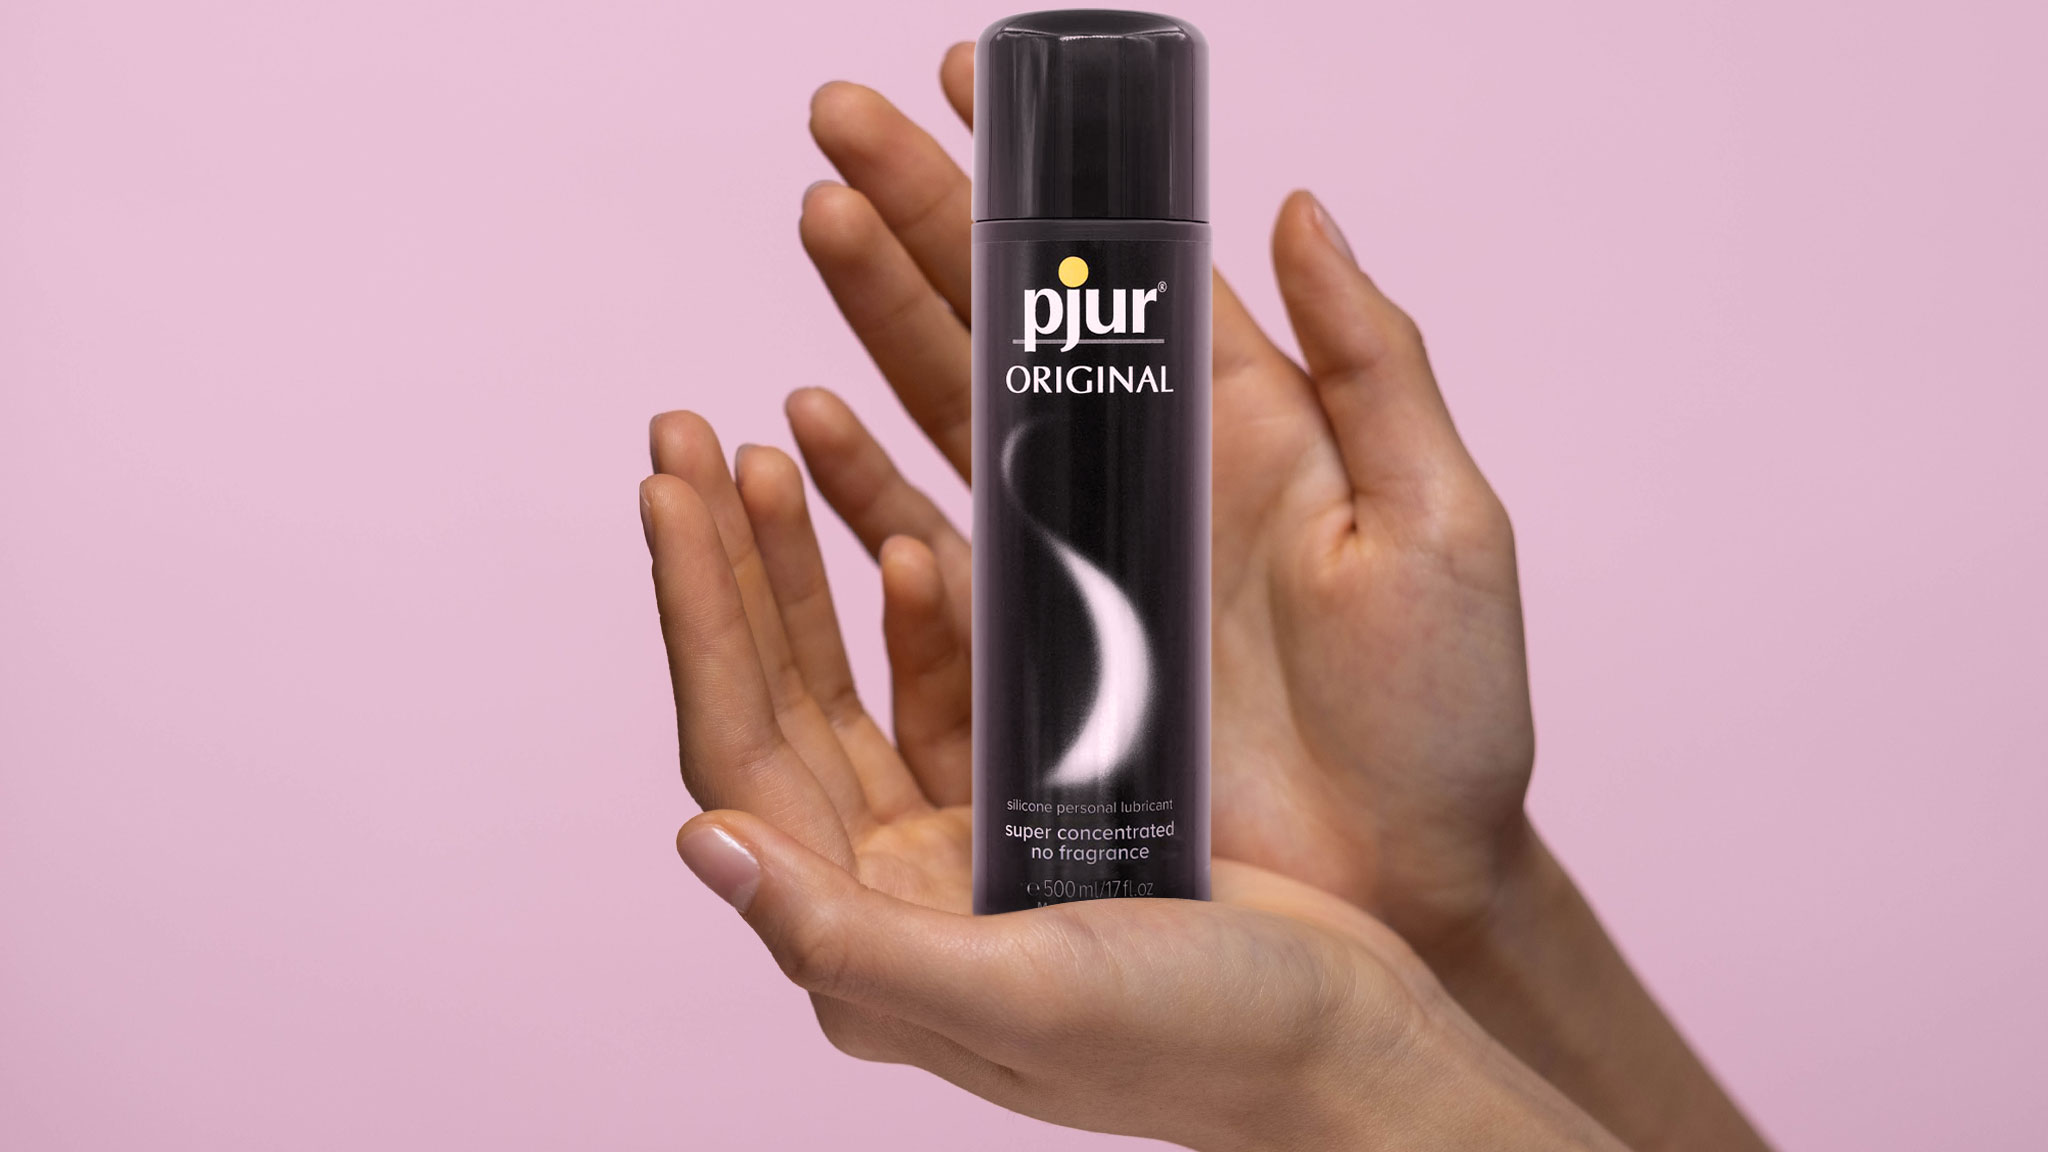 Photograph Of Open Hands Holding Bottle Of Pjur Original Silicone Lubricants